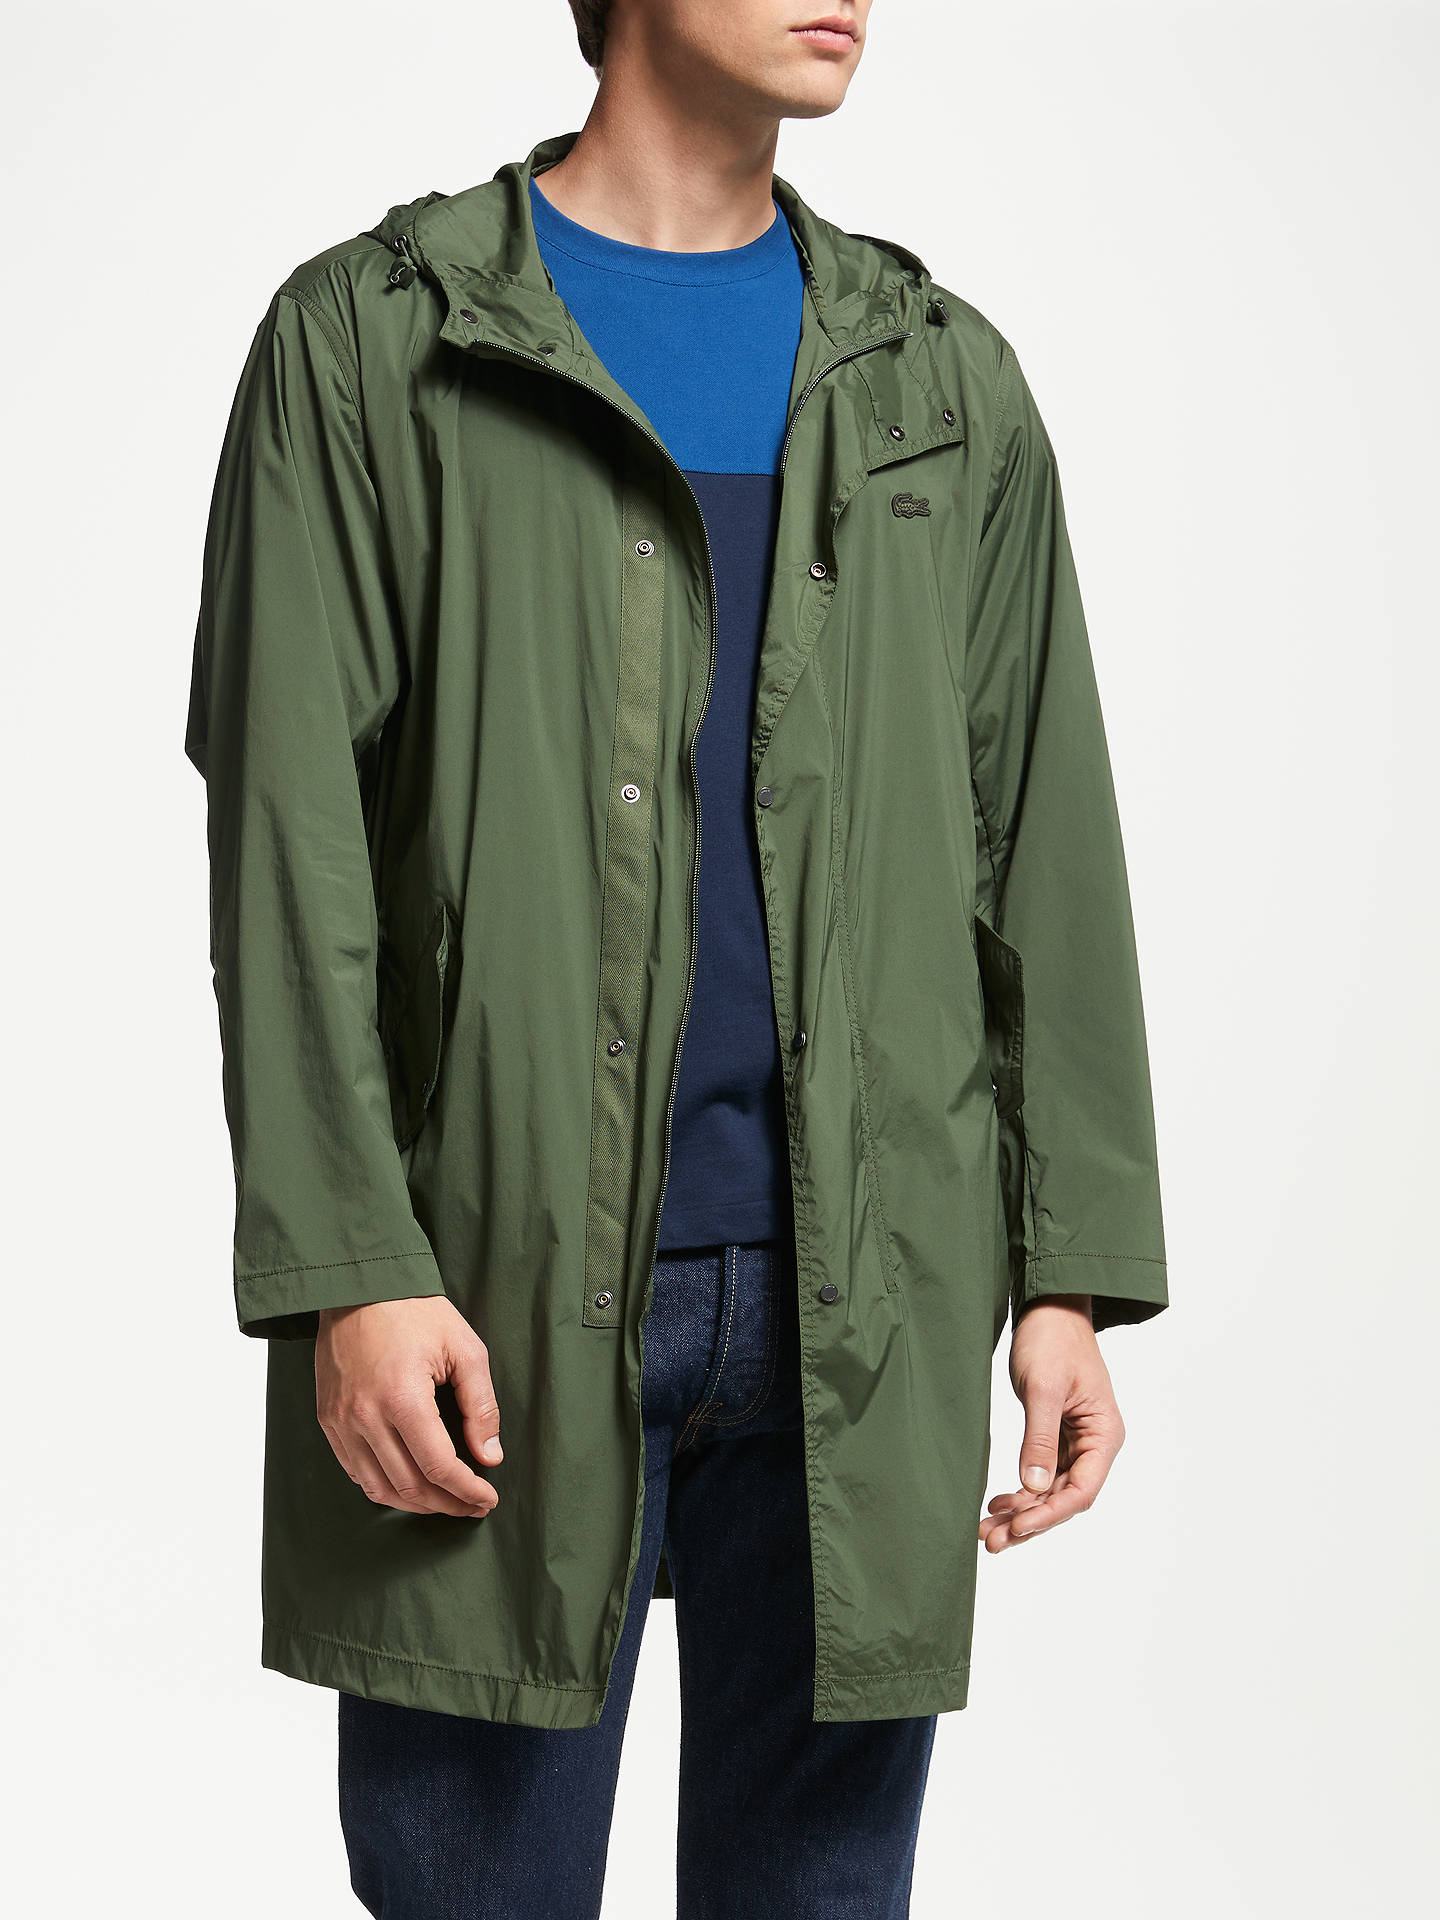 100% authentique 95600 5d04f Lacoste Fishtail Parka, Green at John Lewis & Partners